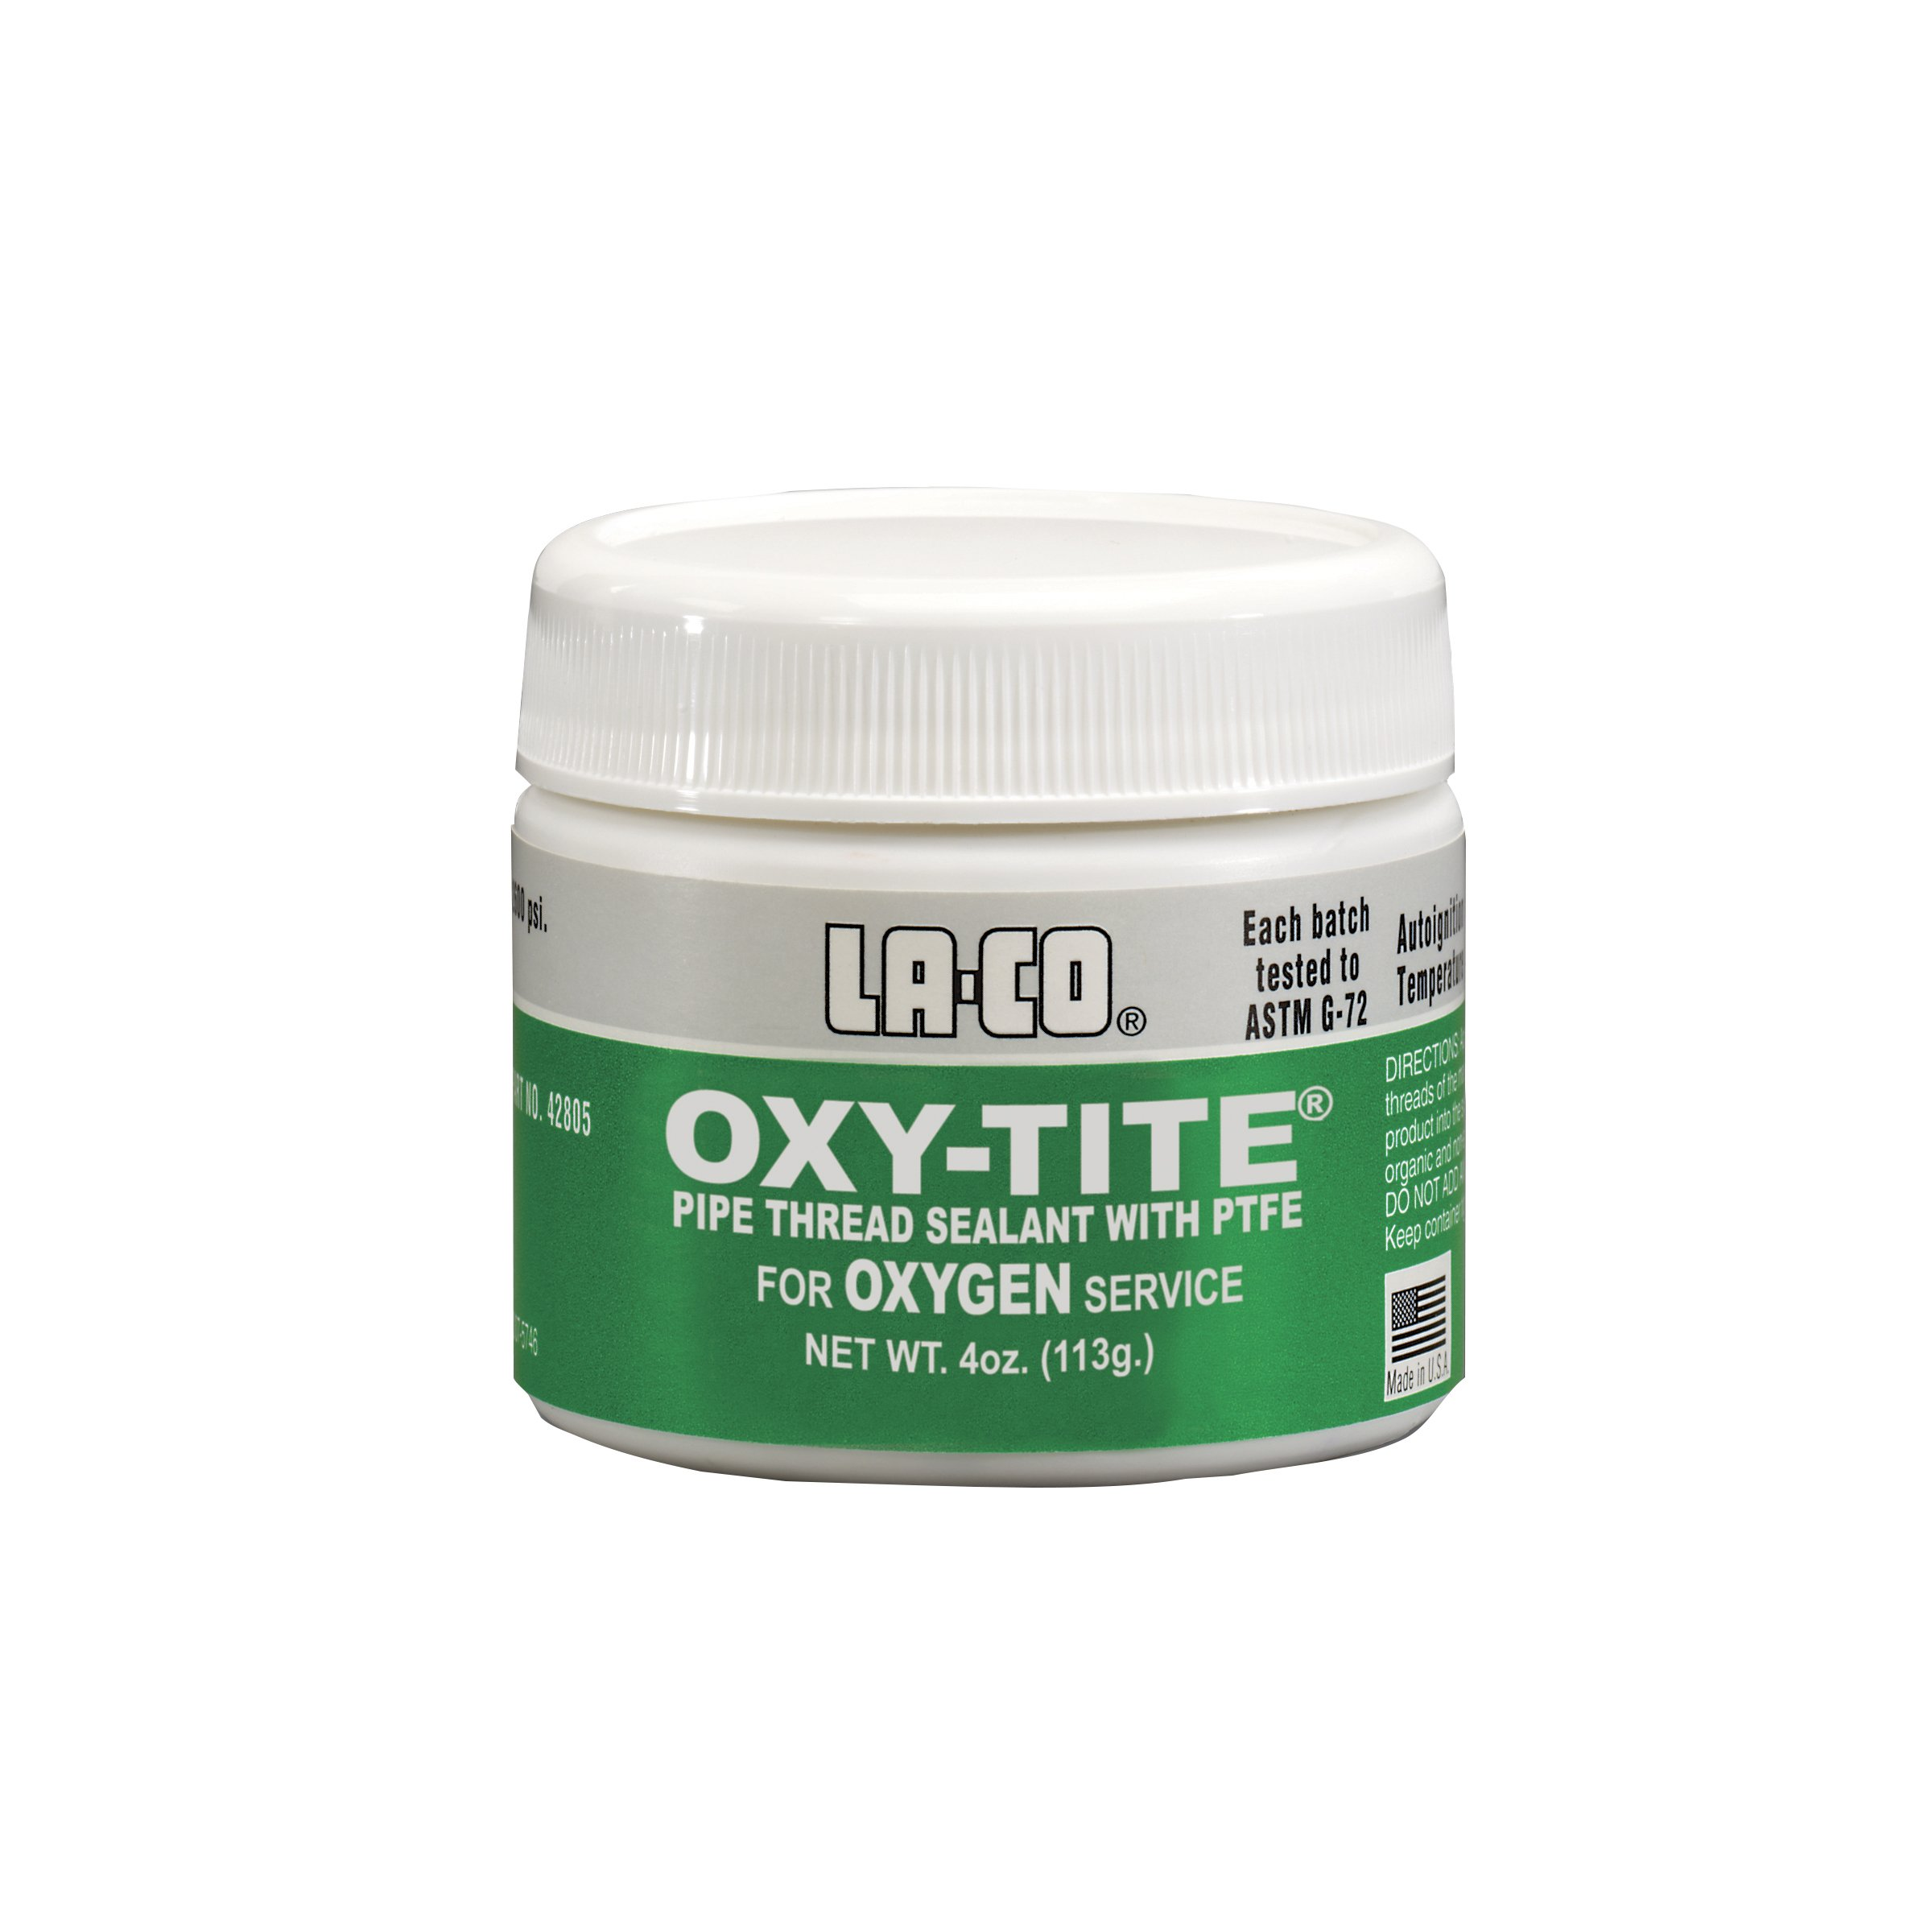 LA-CO Oxy-Tite, Premium Pipe Thread Sealant Paste with PTFE, -320 to 450 Degree F Temperature, 4 oz